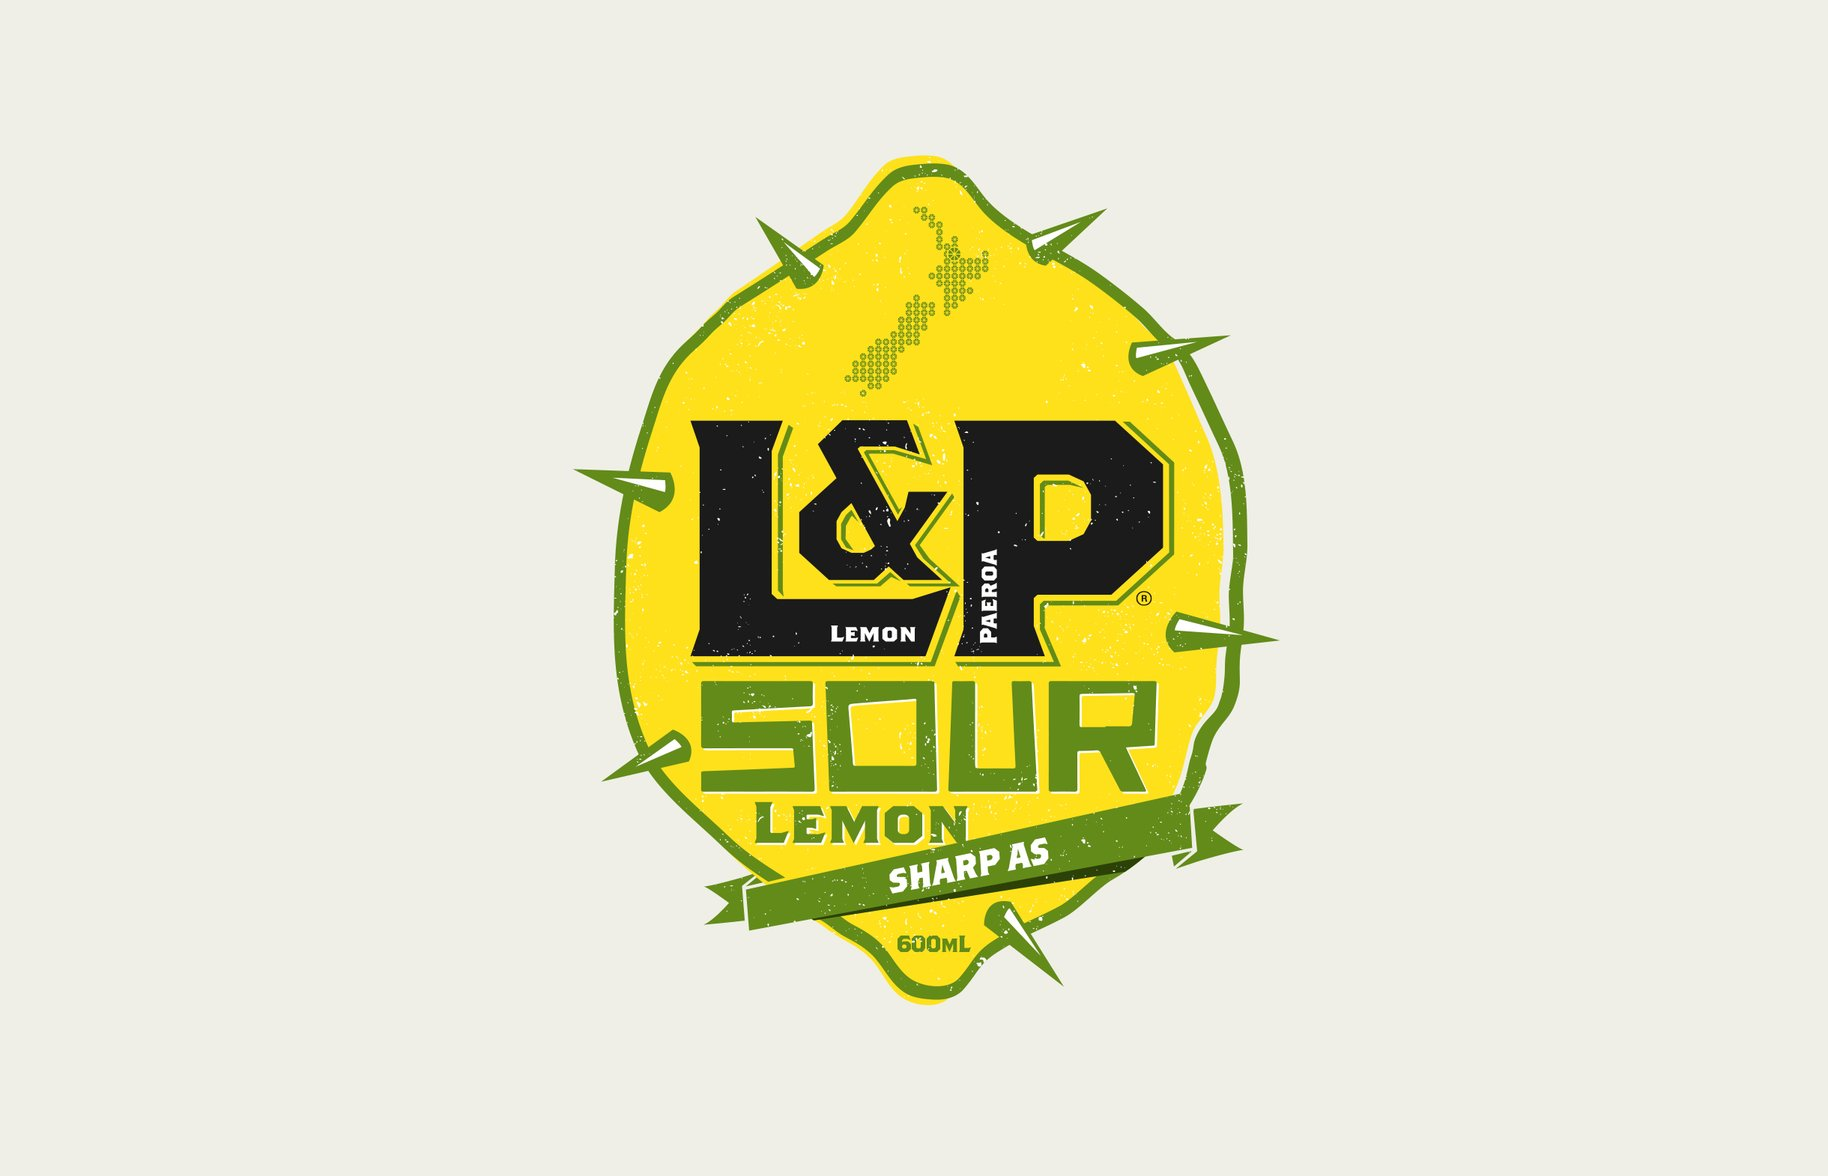 L&P special edition sour lemon spike graphic